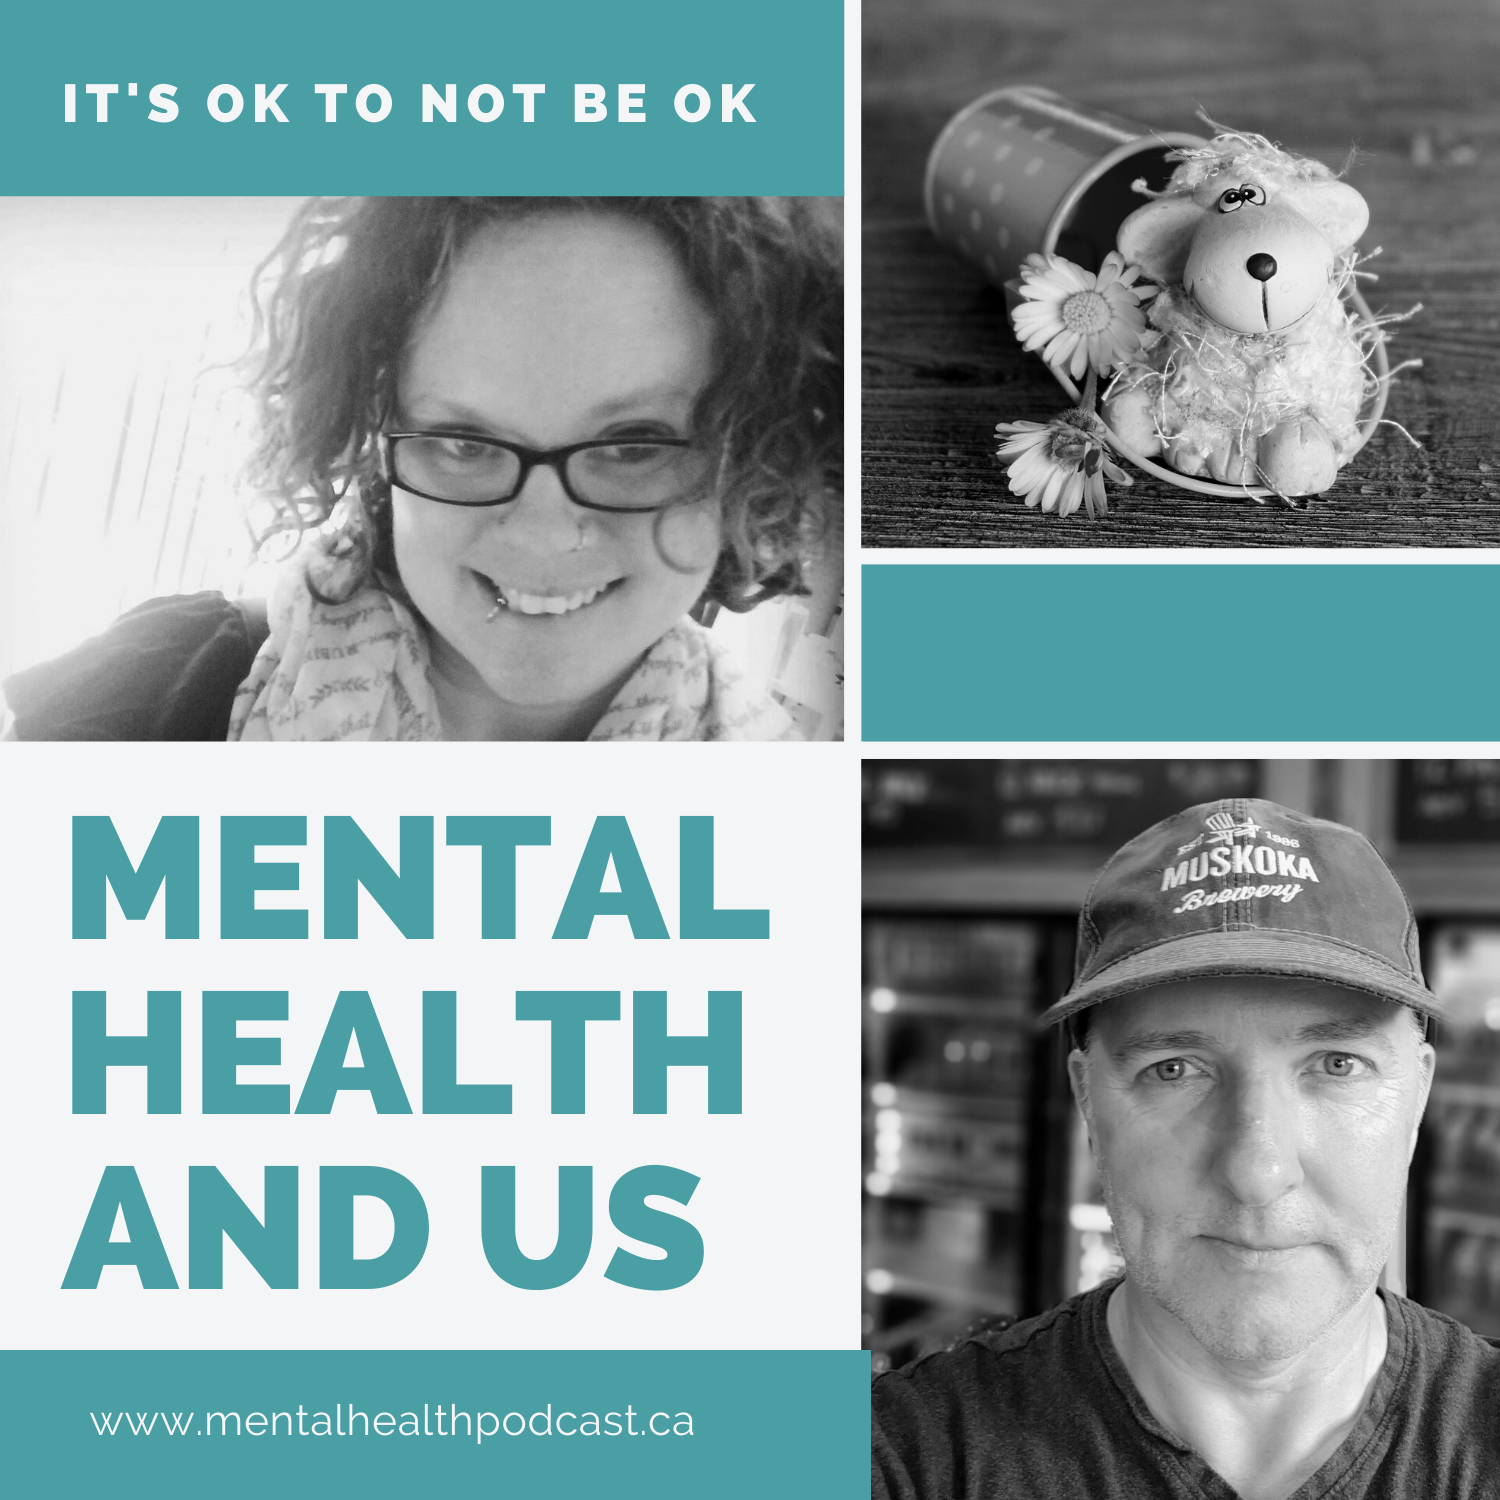 Artwork for podcast Mental Health and Us